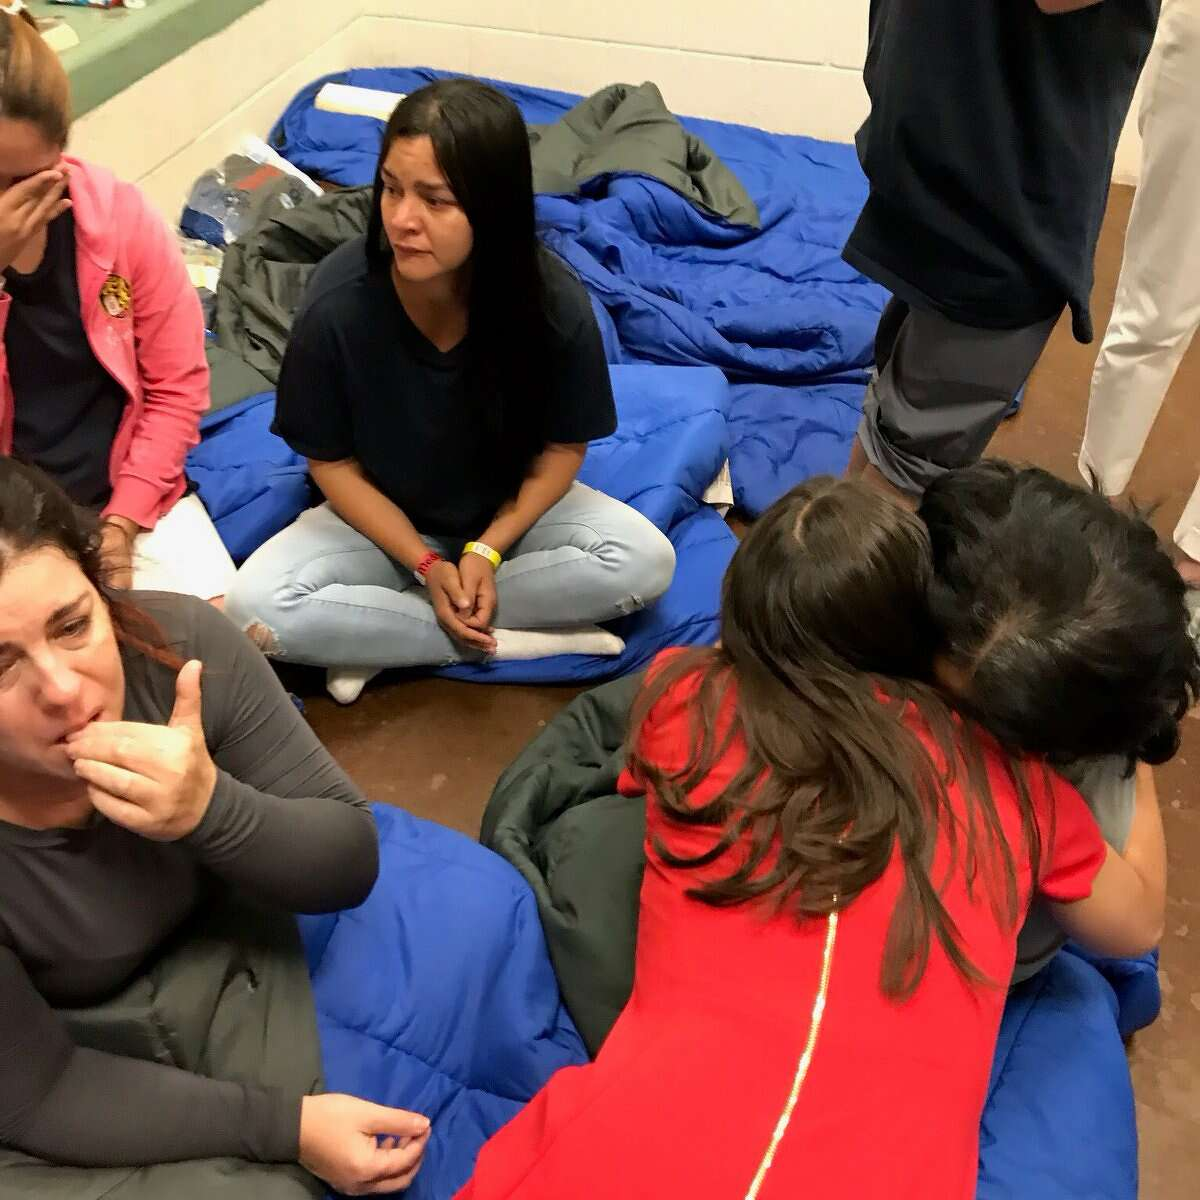 This image, captured by Rep. Joaquin Castro, shows Rep. Alexandria Ocasio-Cortez hugging a migrant she spoke to at a Border Patrol facility on July 1, 2019.